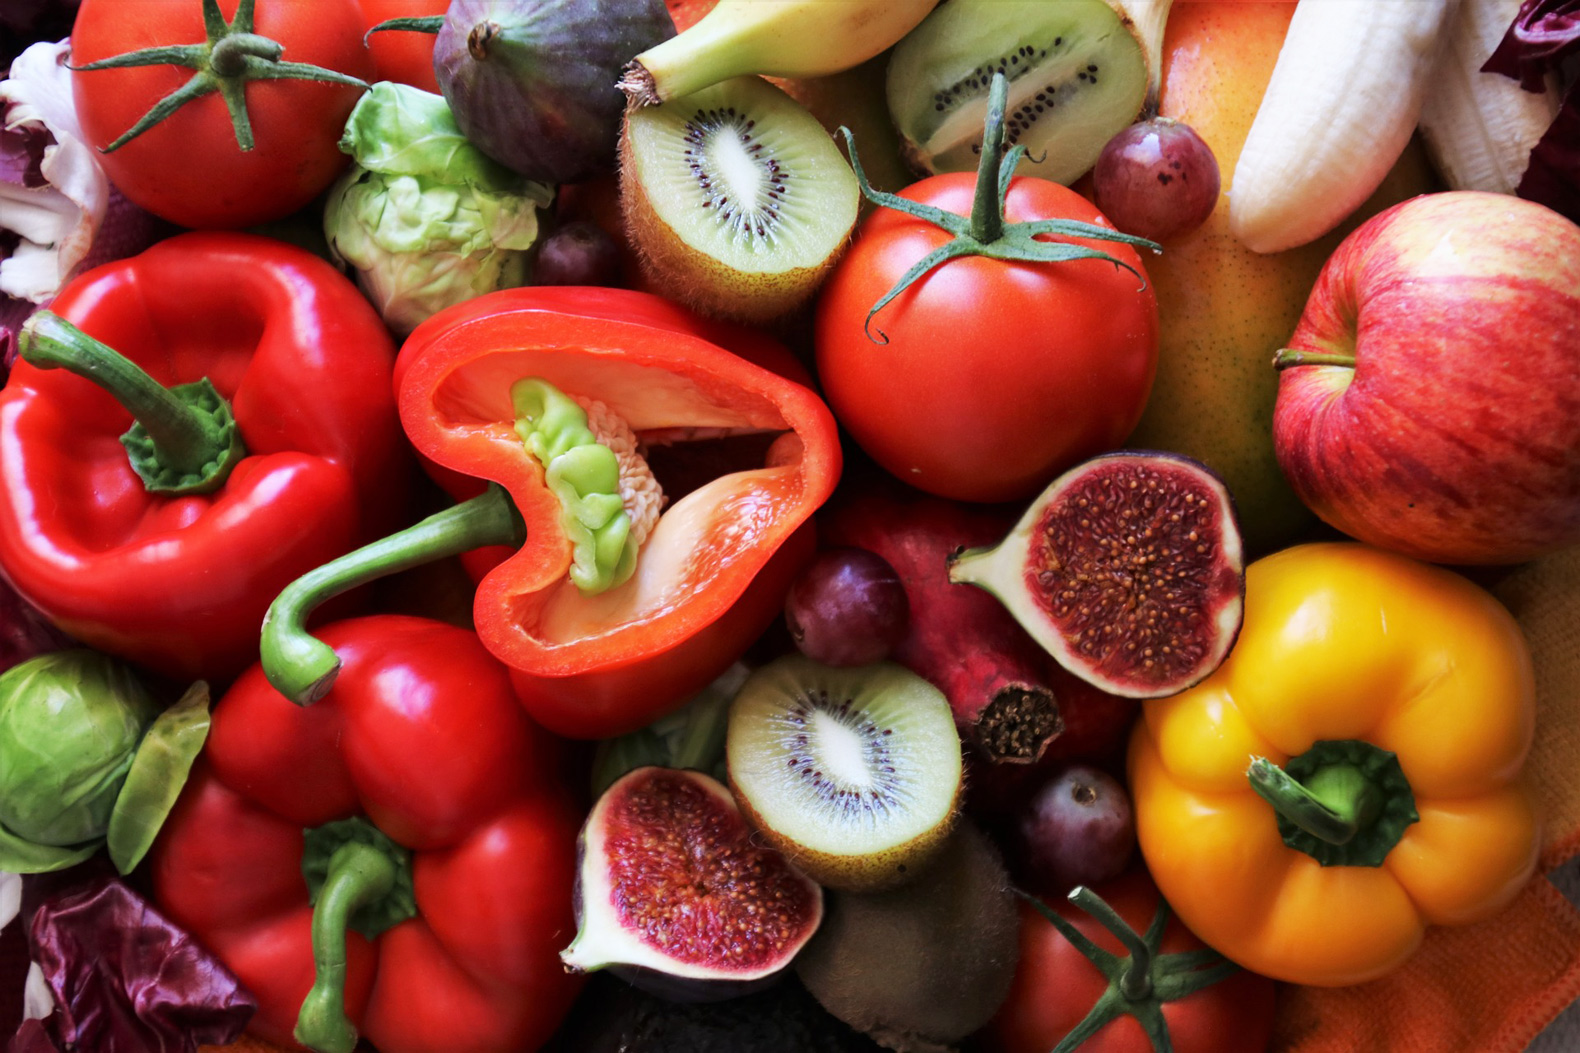 New research shows an organic diet shrinks pesticide exposure